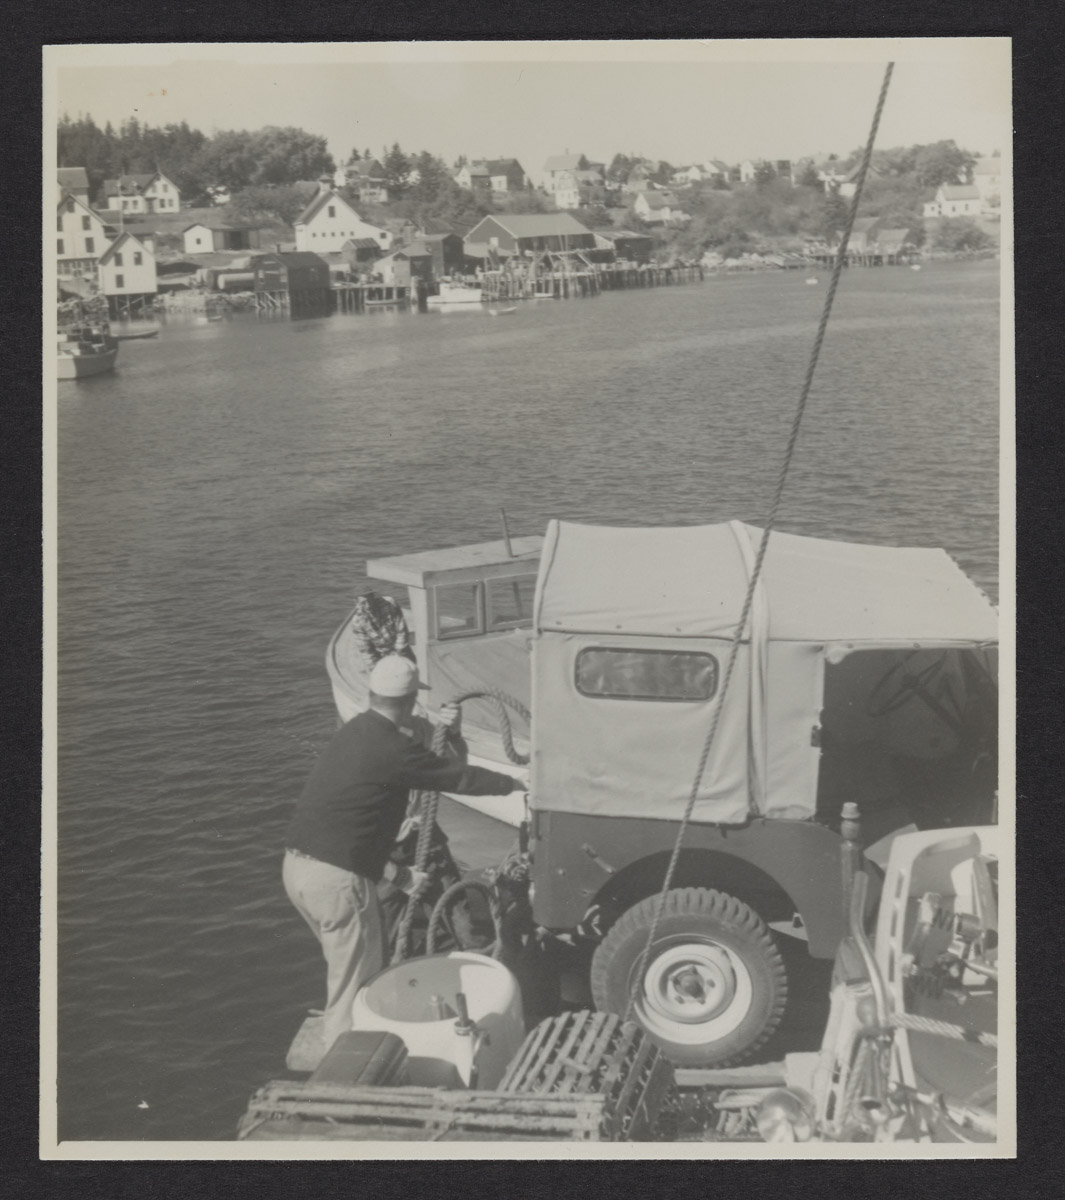 Man and Jeep Aboard the Sunbeam II Photograph, 1960s